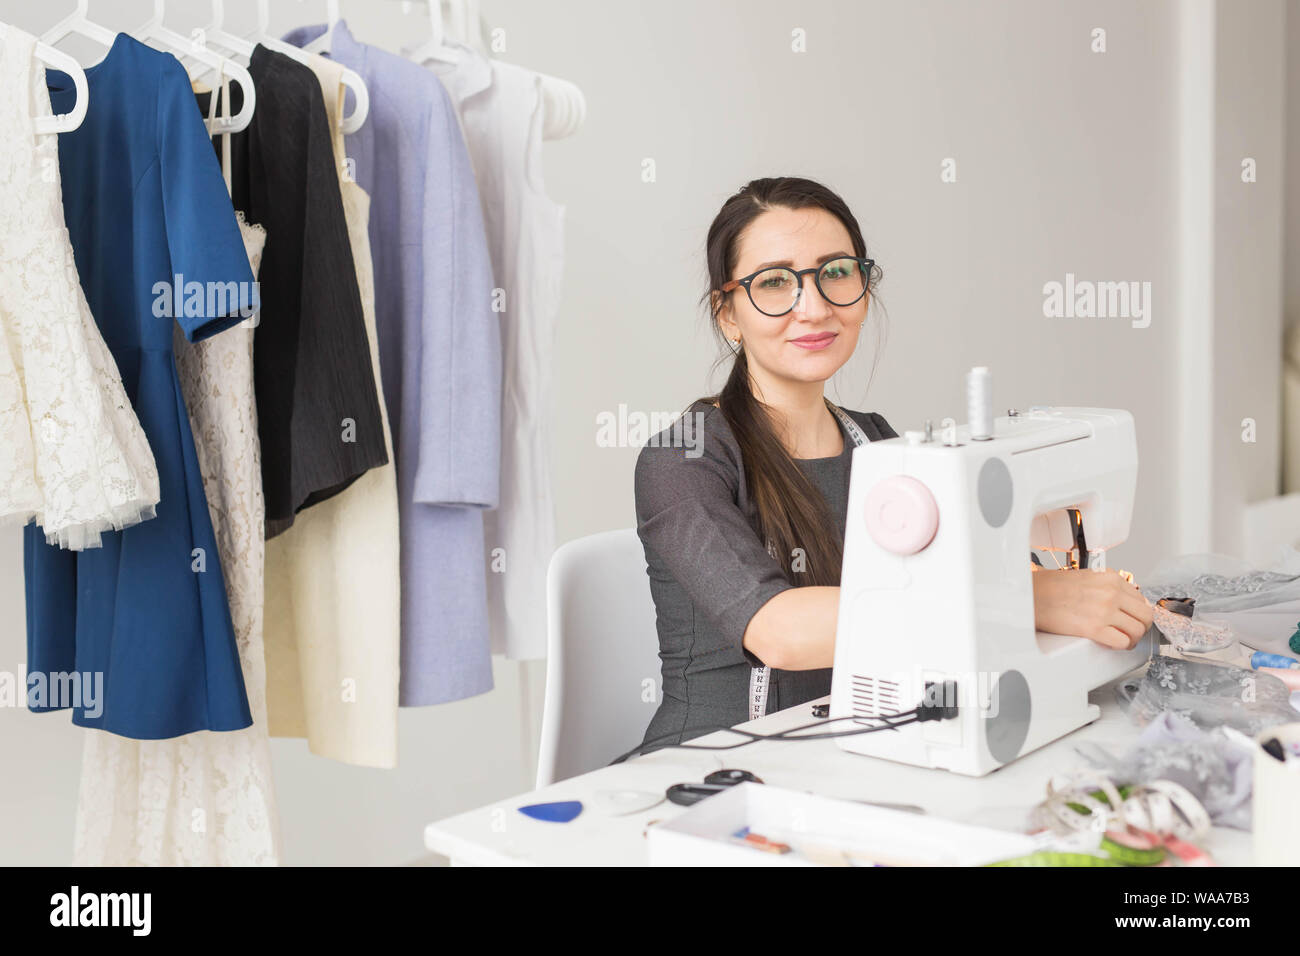 People Dressmaker Tailor And Fashion Concept Young Fashion Designer In Her Showroom Stock Photo Alamy